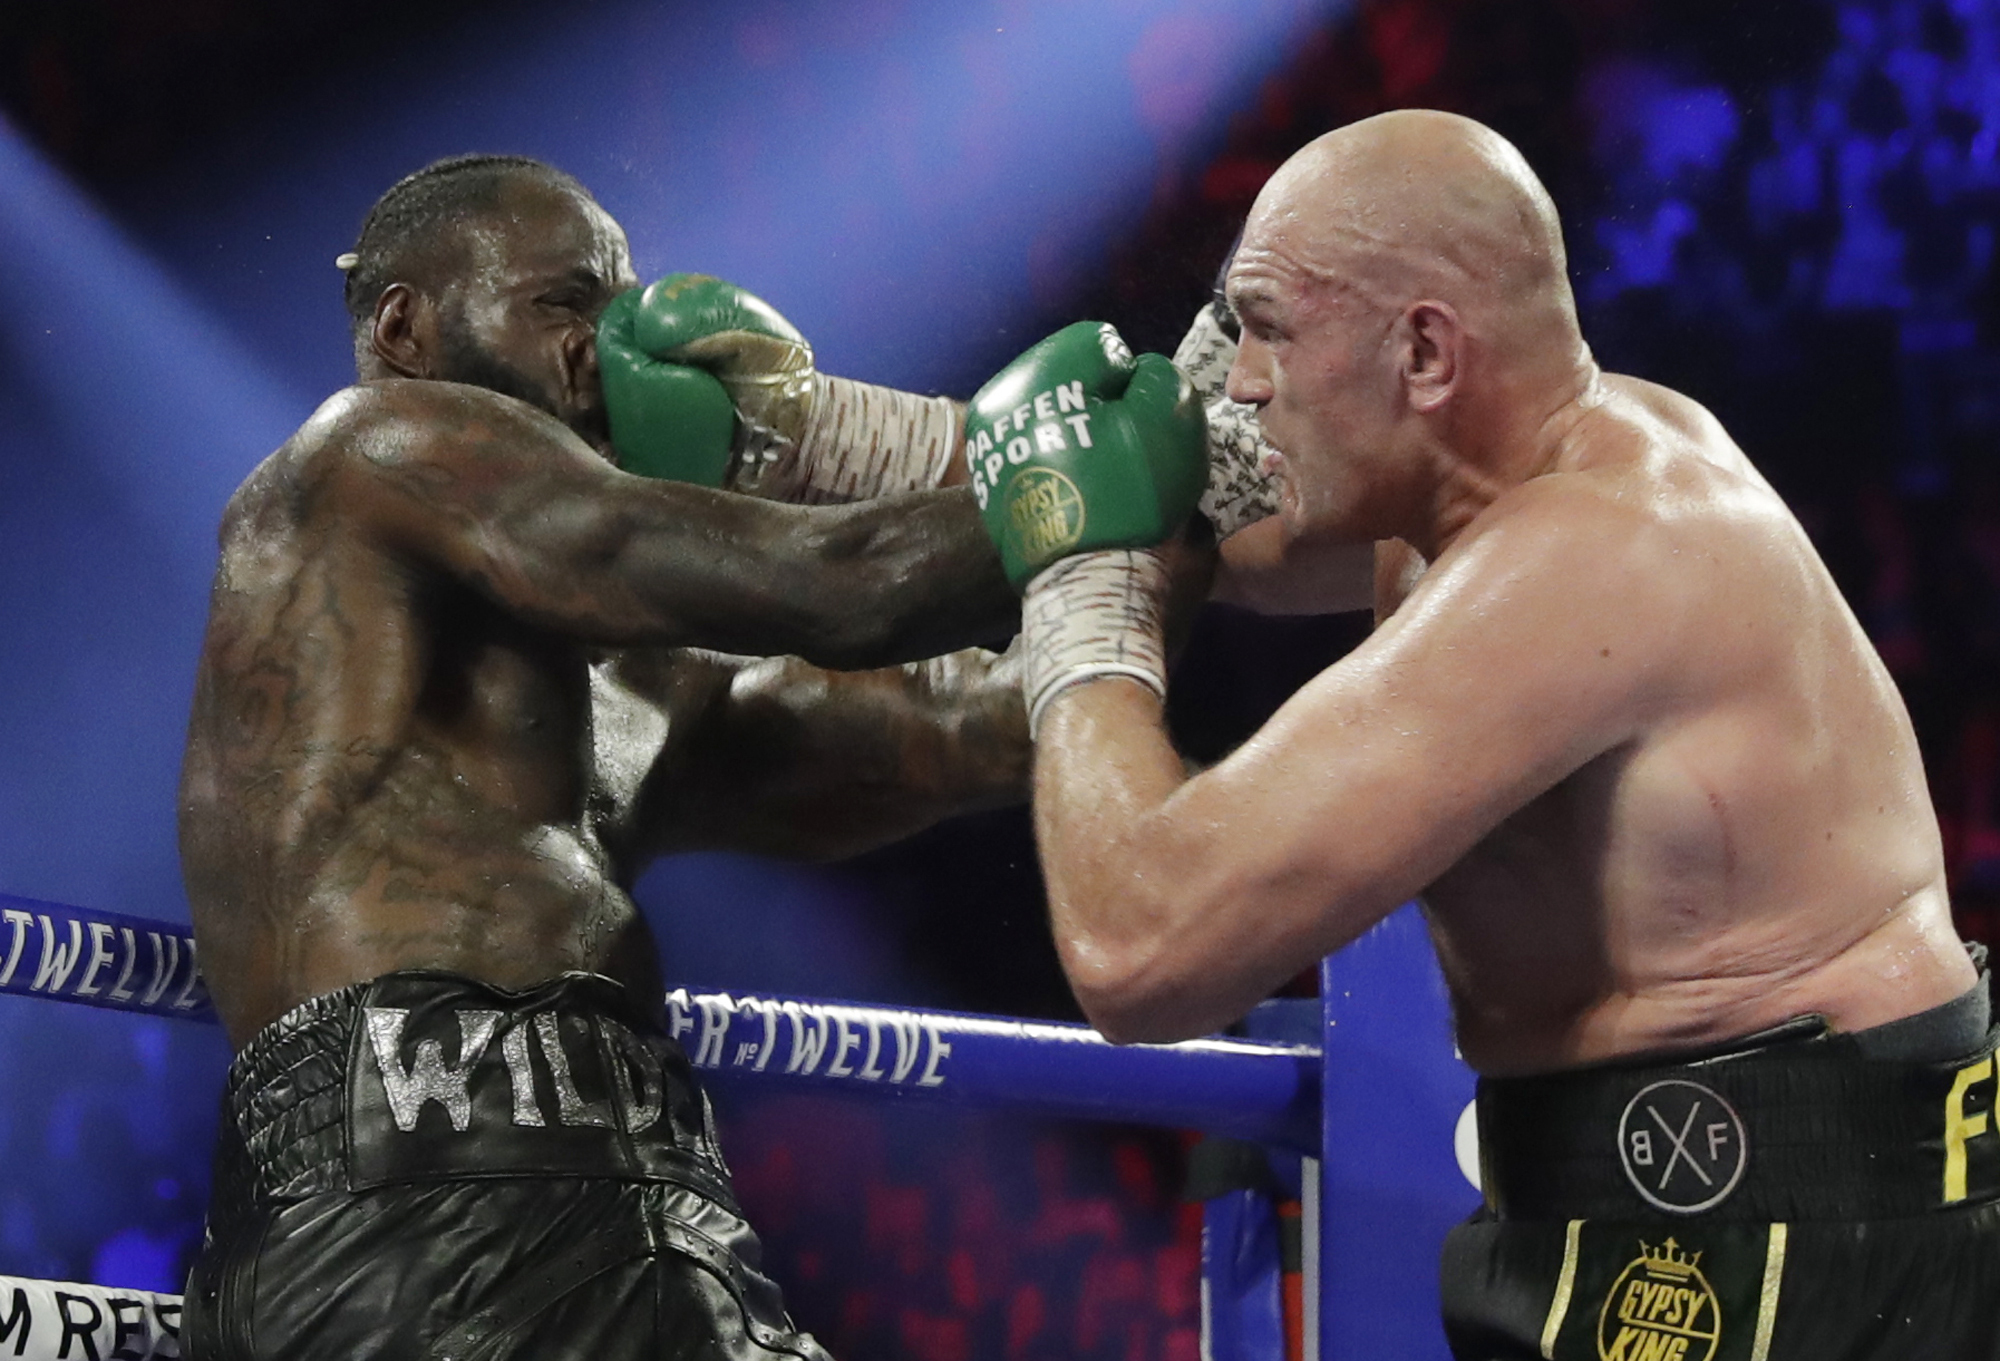 In this Feb. 22, 2020, file photo, Tyson Fury, of England, lands a right to Deontay Wilder, left, during a WBC heavyweight championship boxing match in Las Vegas. Boxing promoter Bob Arum says he plans to stage a card of five fights on June 9 at the MGM Grand. It's the first of a series of fights over the next two months at the Las Vegas hotel. A second fight card will be held two nights later. ESPN will televise both cards to kick off twice weekly shows at the hotel in June and July. The fights are pending approval of the Nevada Athletic Commission. (AP Photo/Isaac Brekken, File)